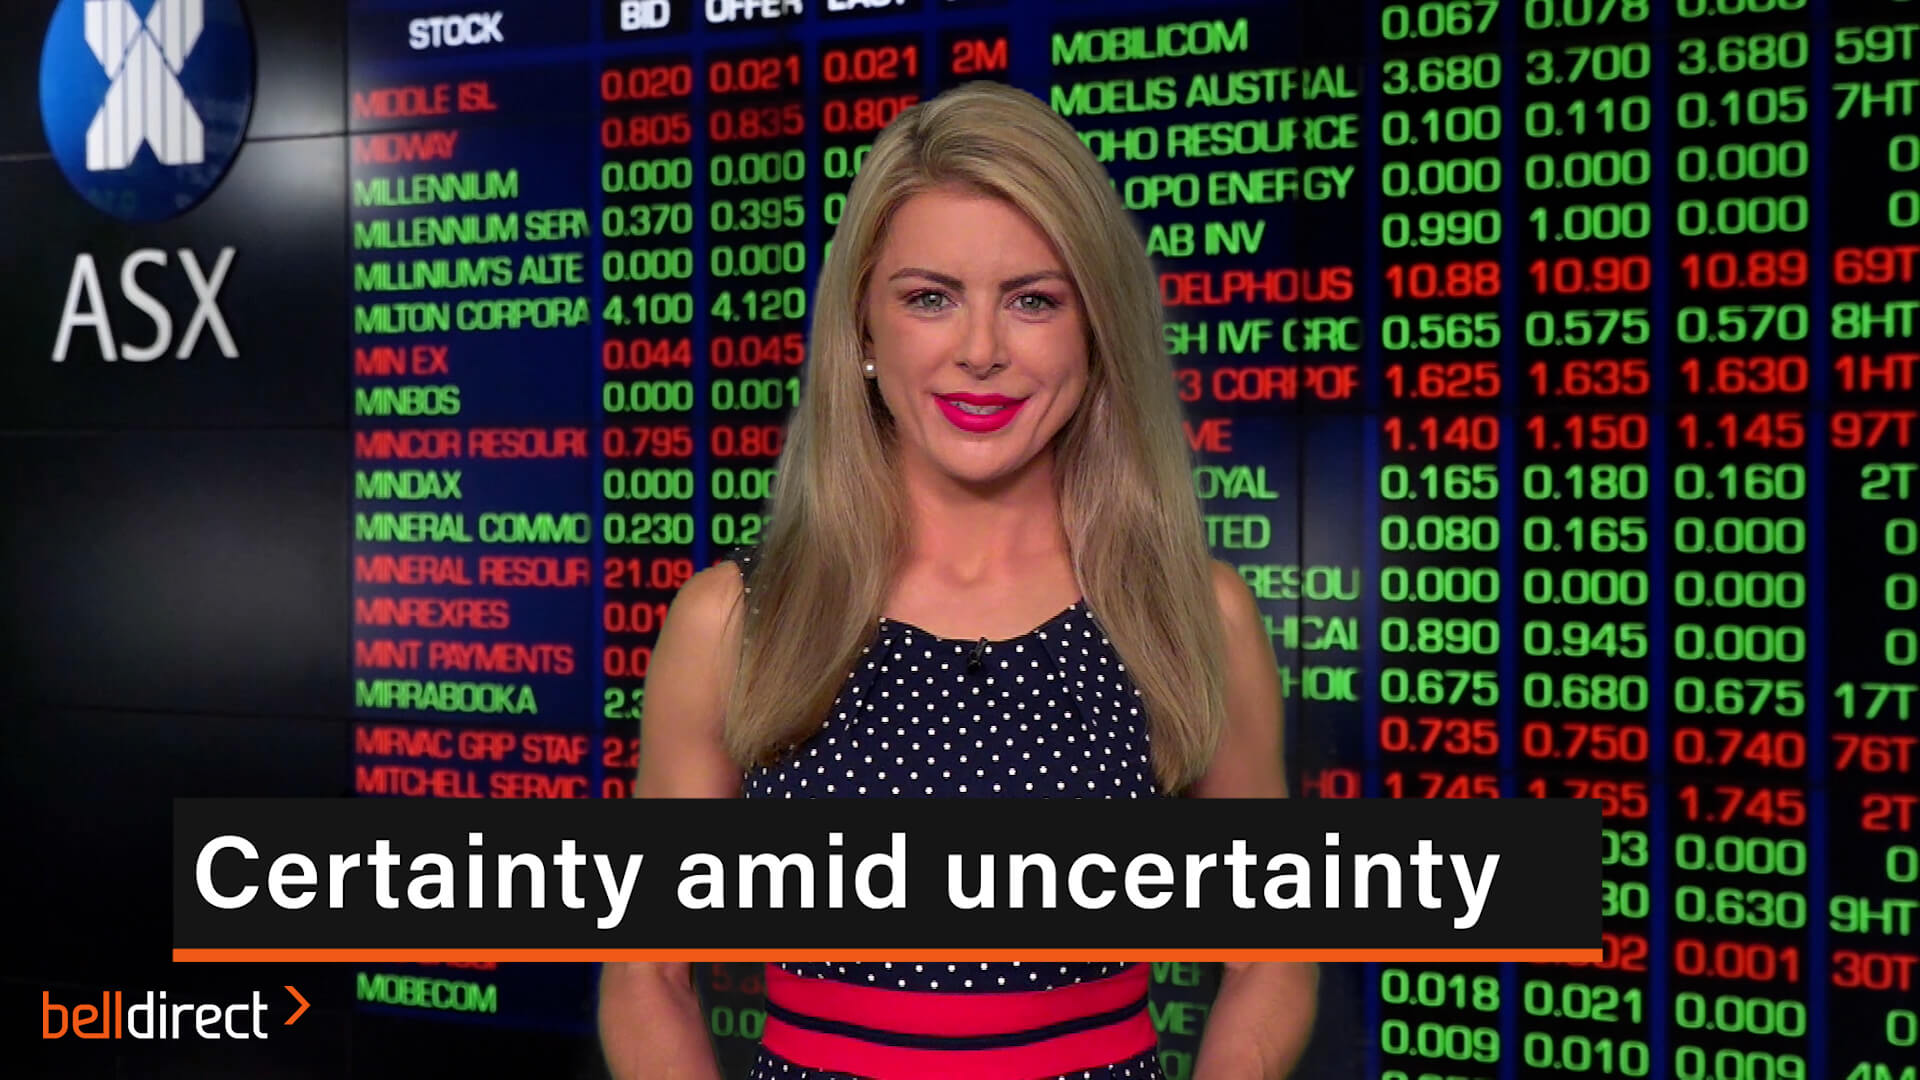 Certainty amid uncertainty